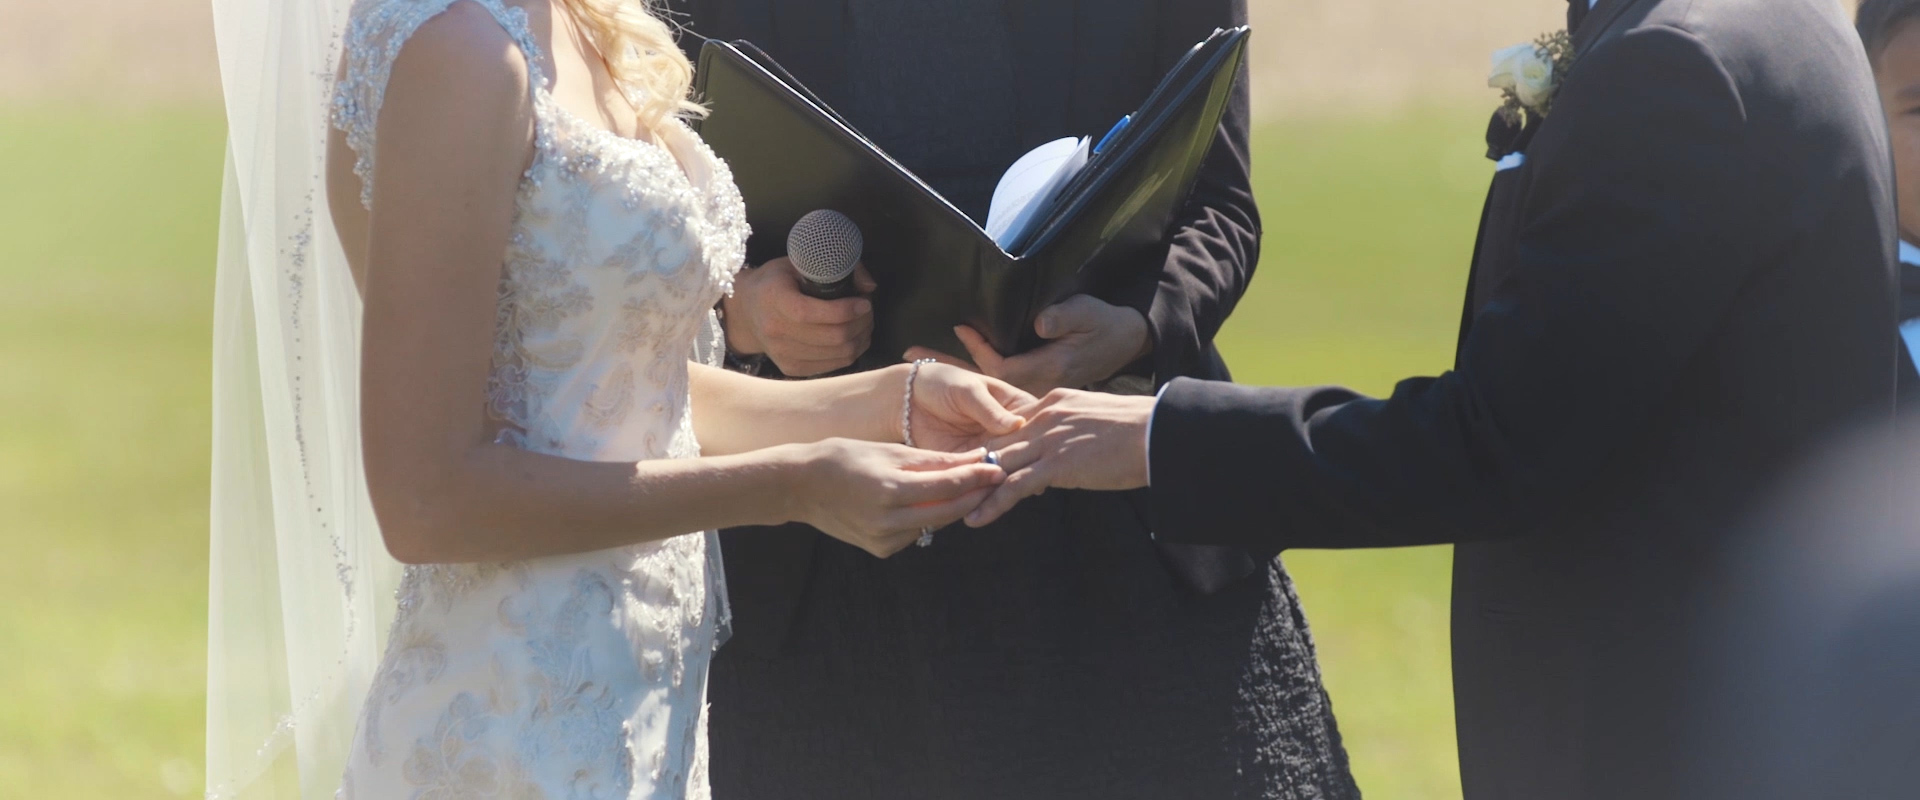 An image of a bride placing a ring on her grooms finger during their wedding ceremony in collingwood; taken from a Toronto Wedding Video